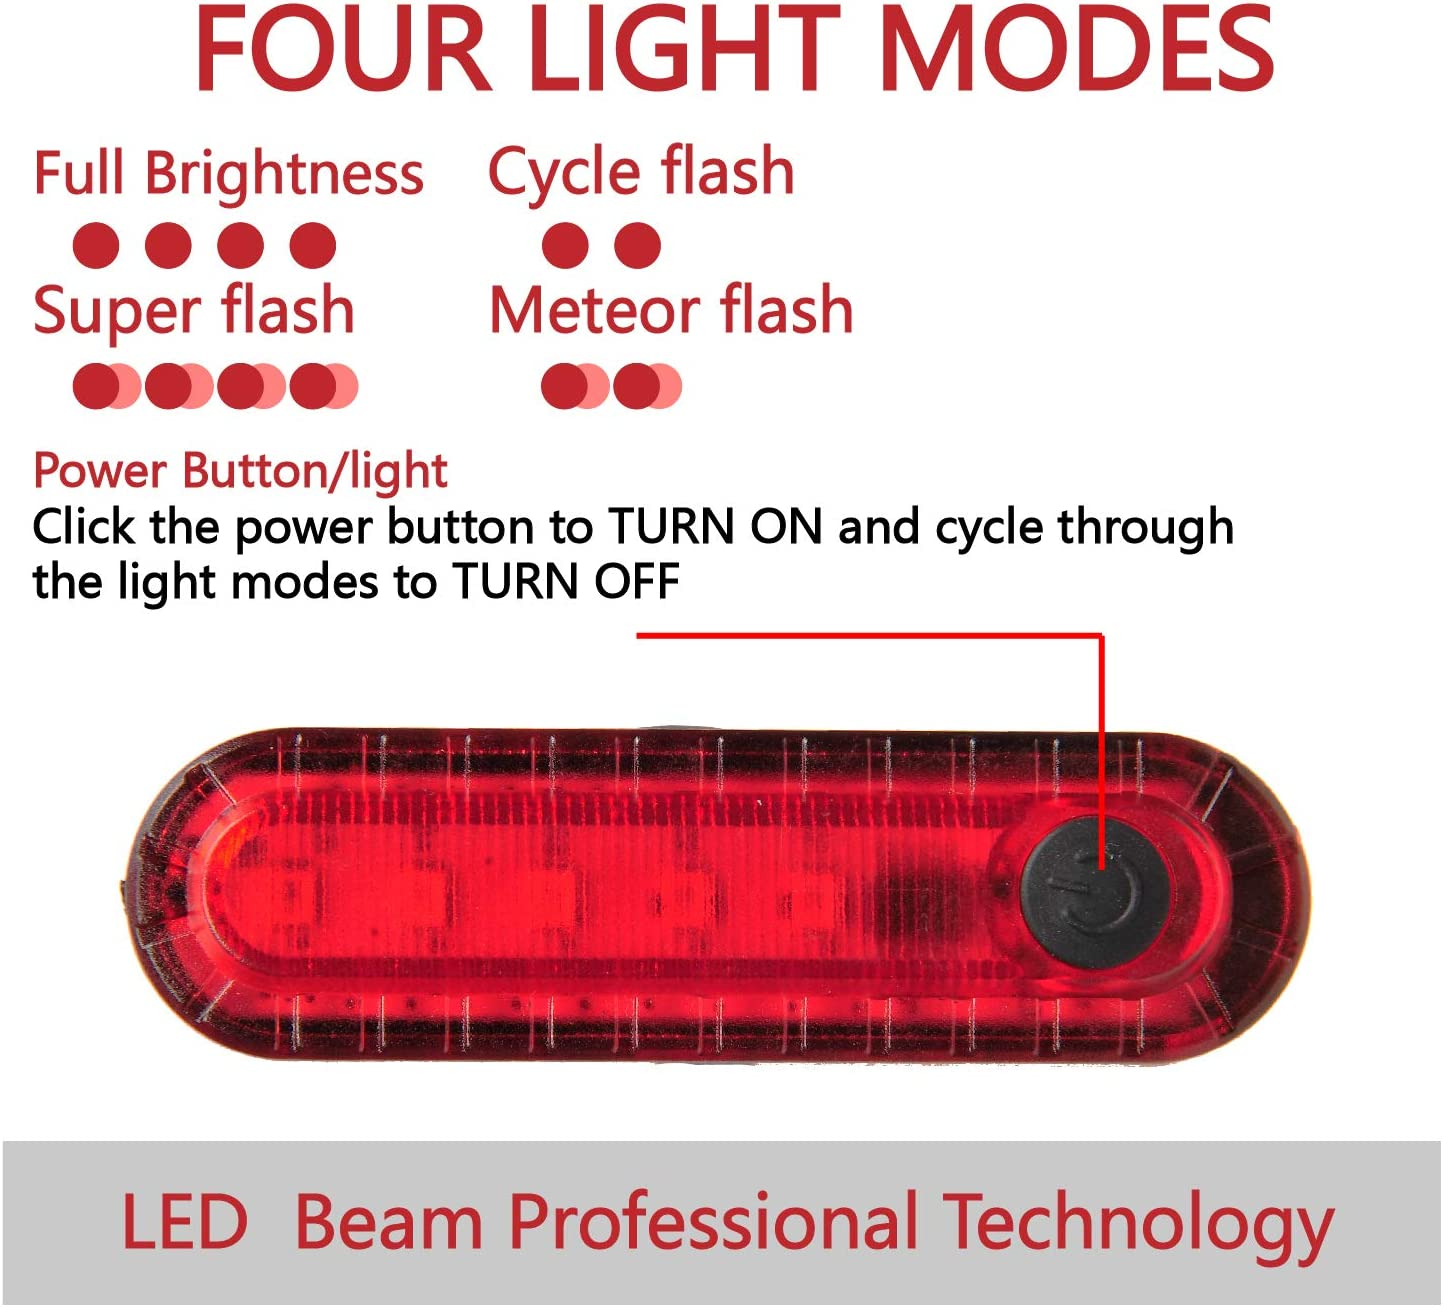 Fits on All Bike and Helmet Super Bright Bicycle Rear Light Keep Safe Cycling victagen USB Rechargeable LED Bike Tail Light 2 Pack with 330mAh Lithium Battery Four Light Modes 2 USB Cables